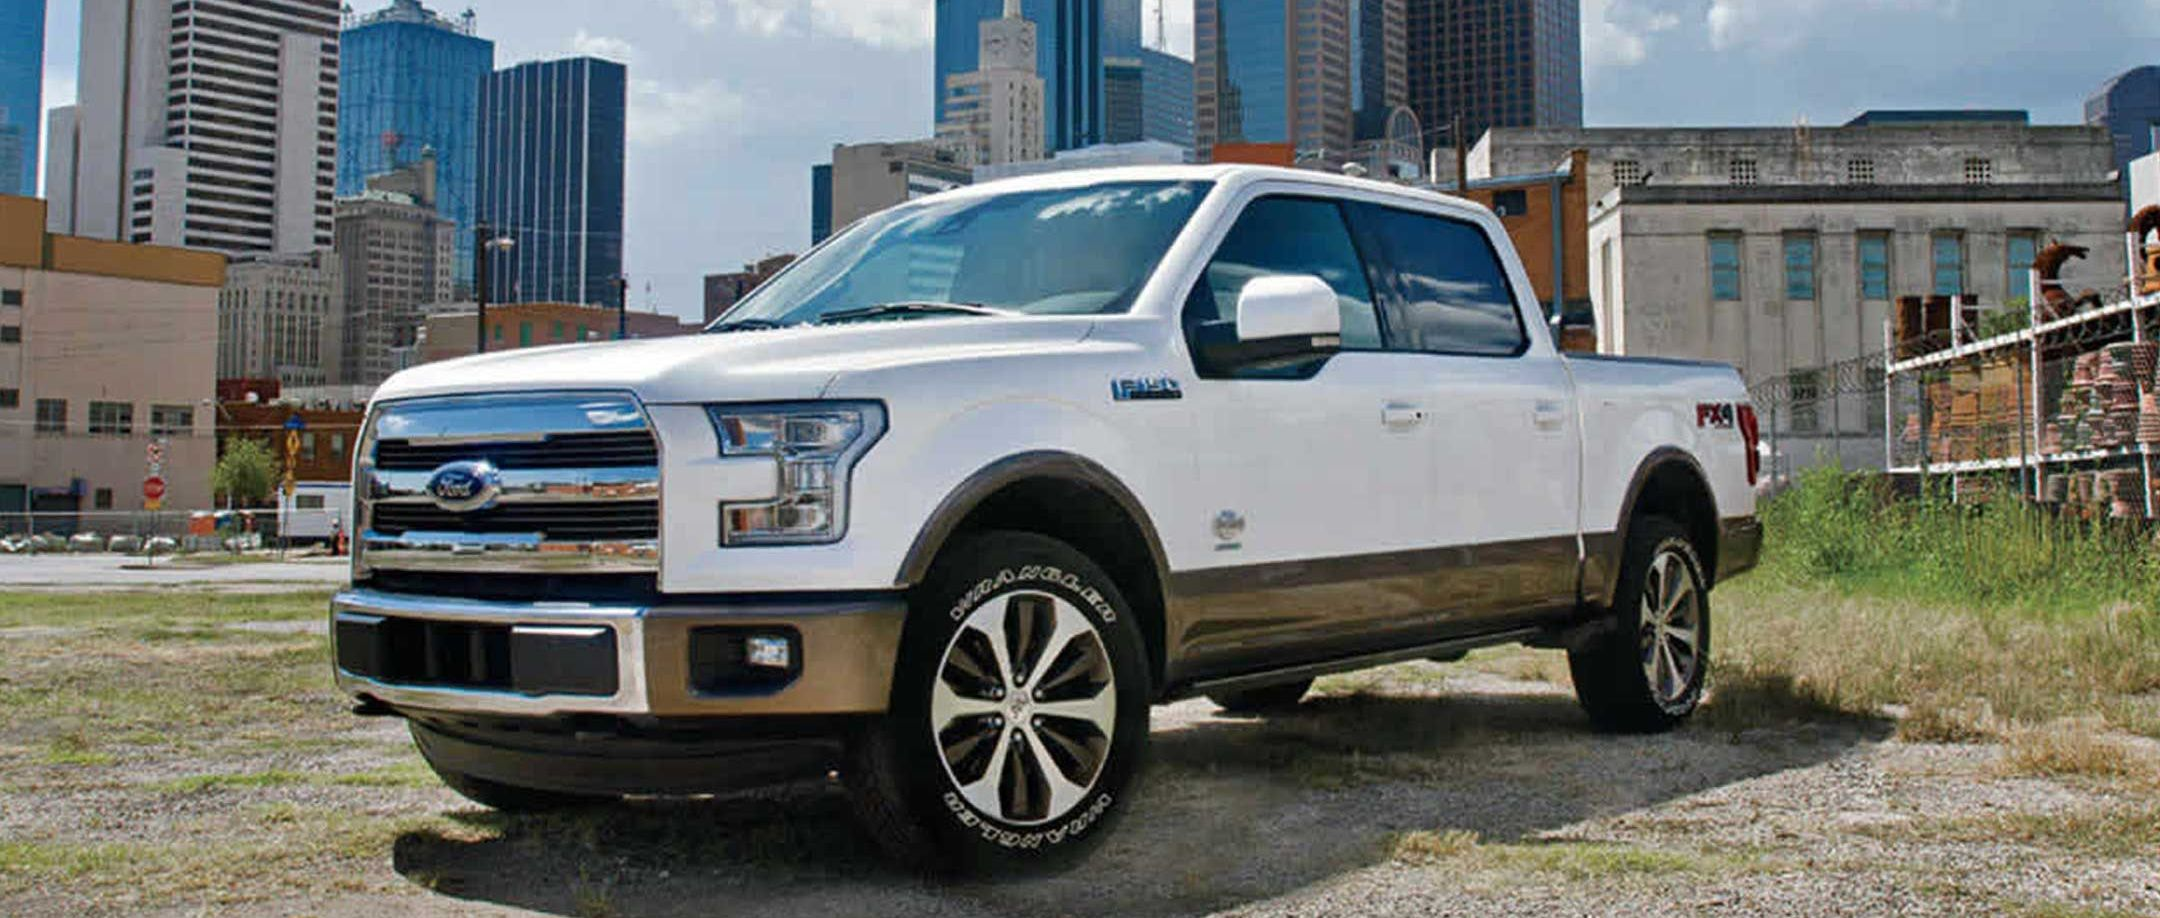 2017 Ford F-150 vs 2017 Chevrolet Silverado 1500 near Fort Worth, TX